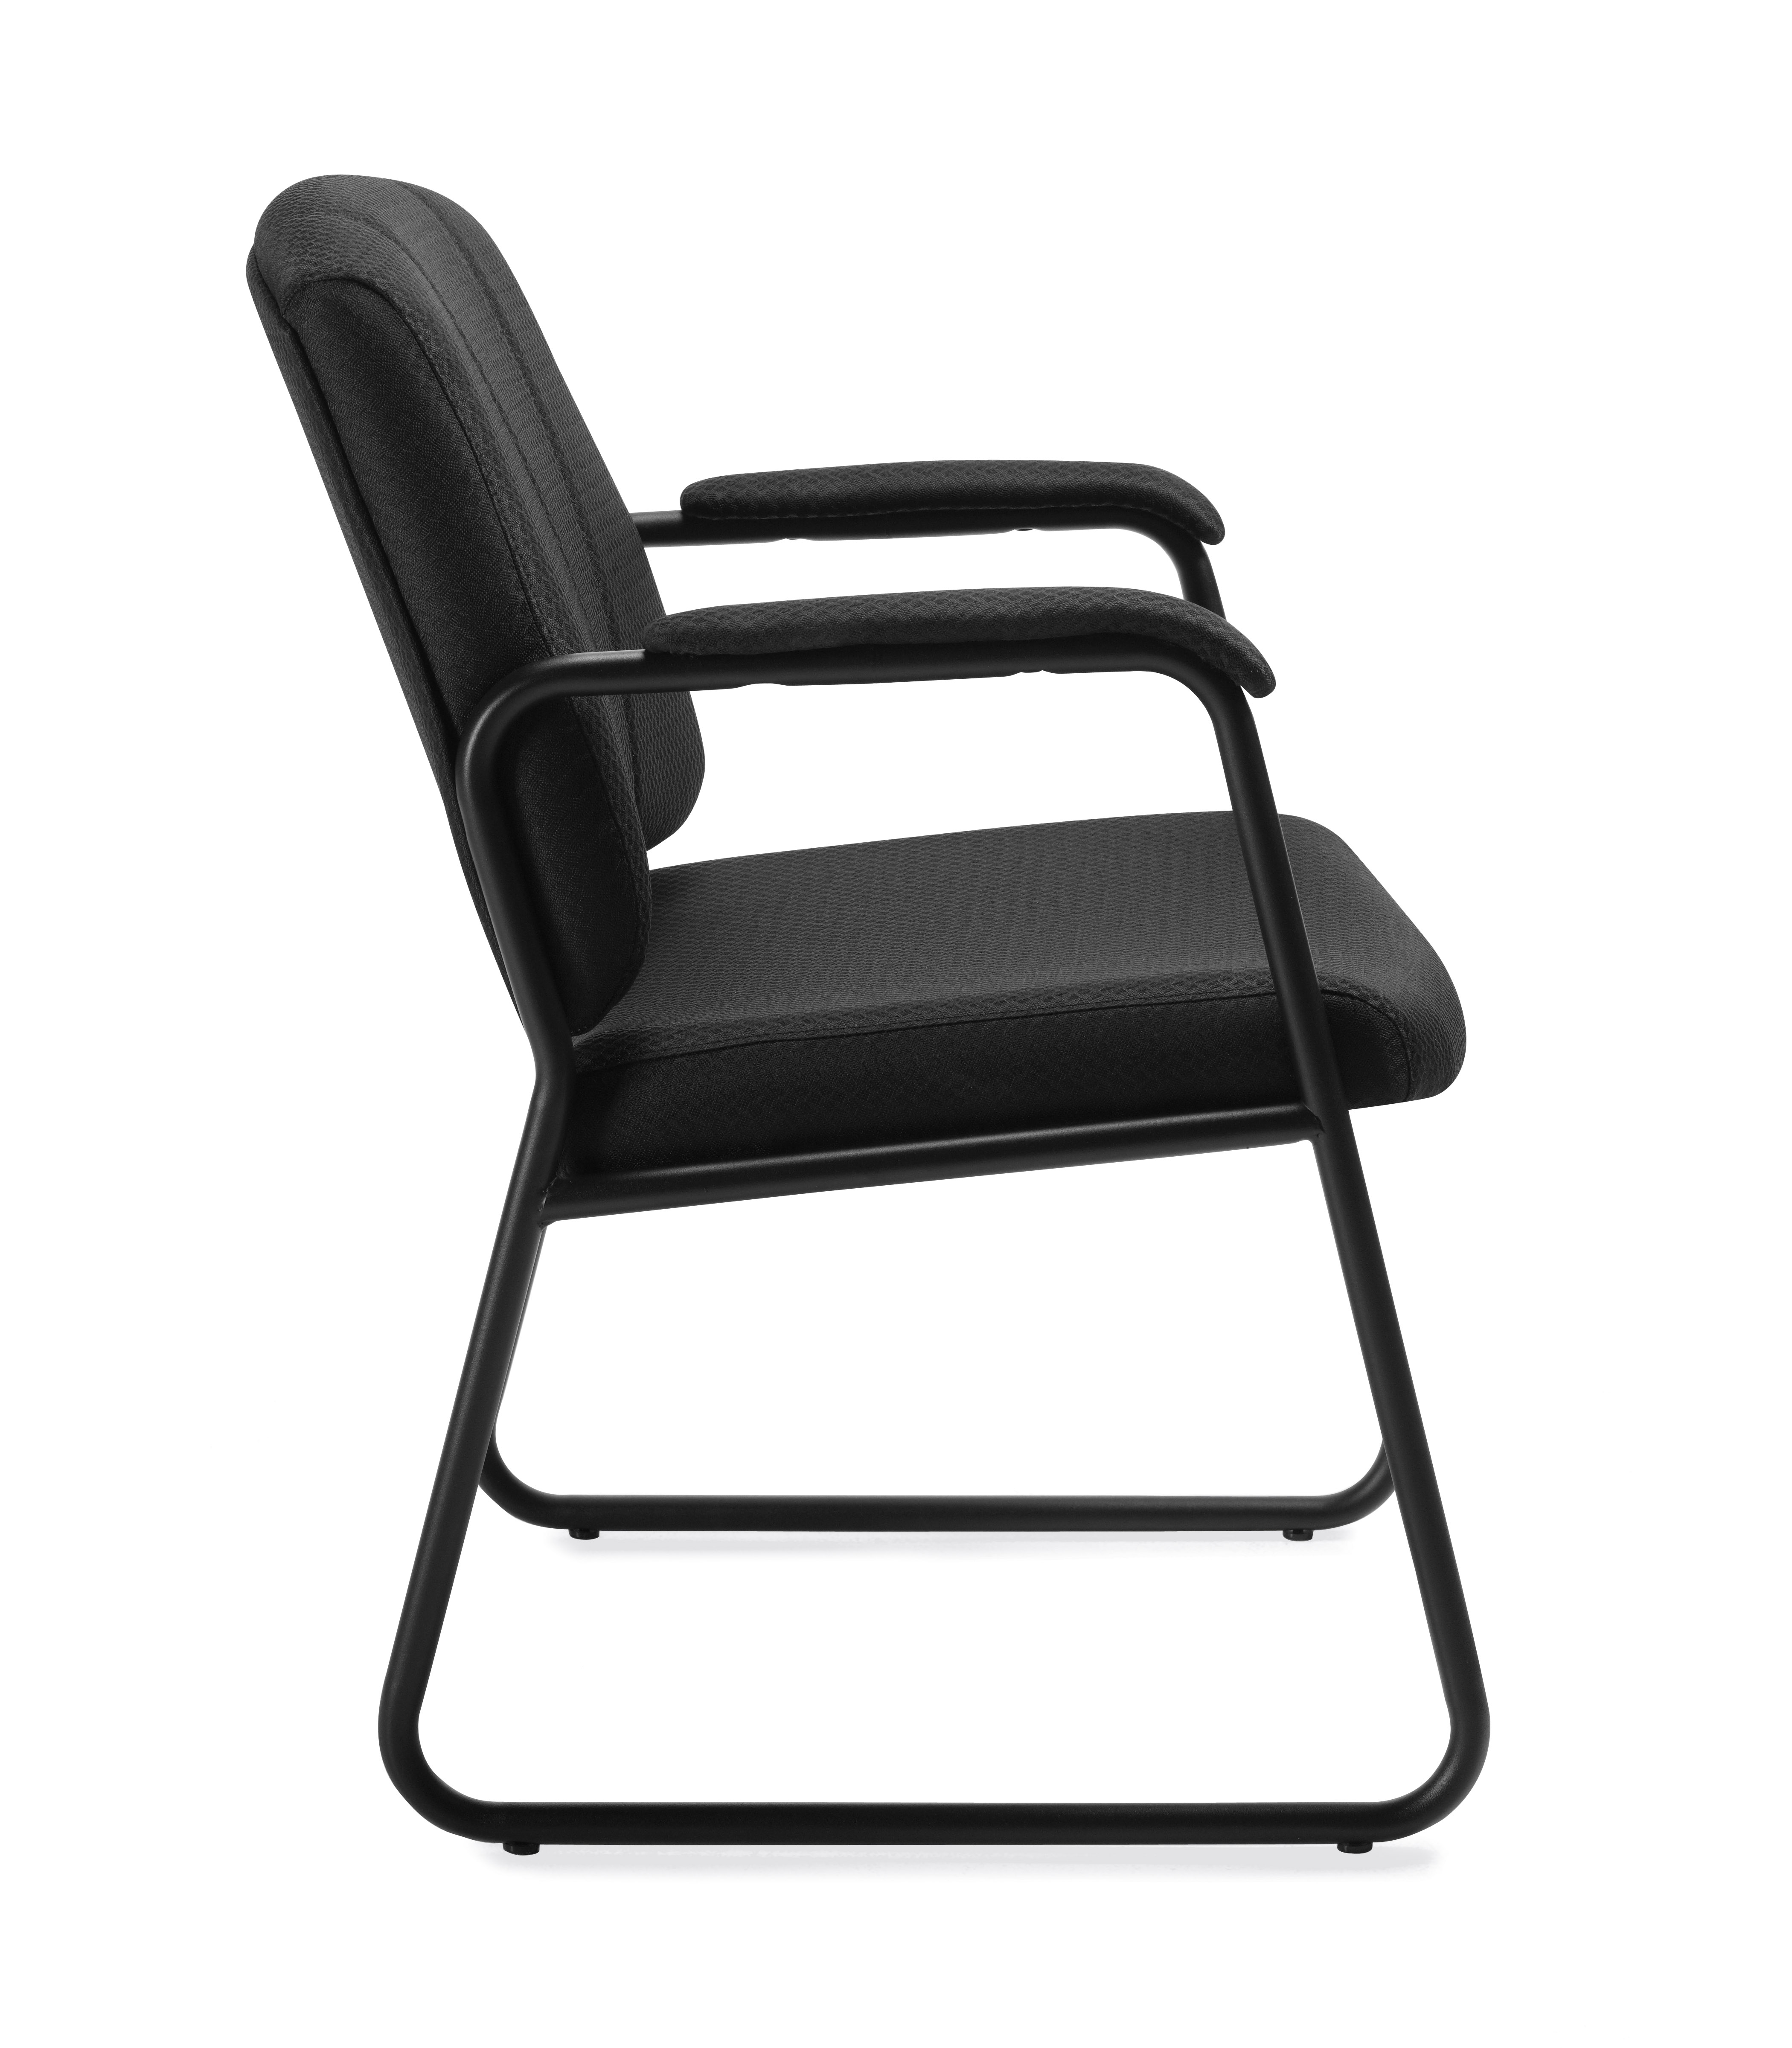 office chair leaning to one side safety 1st 5 piece childrens table and set offices go 11892 black fabric guest with arms